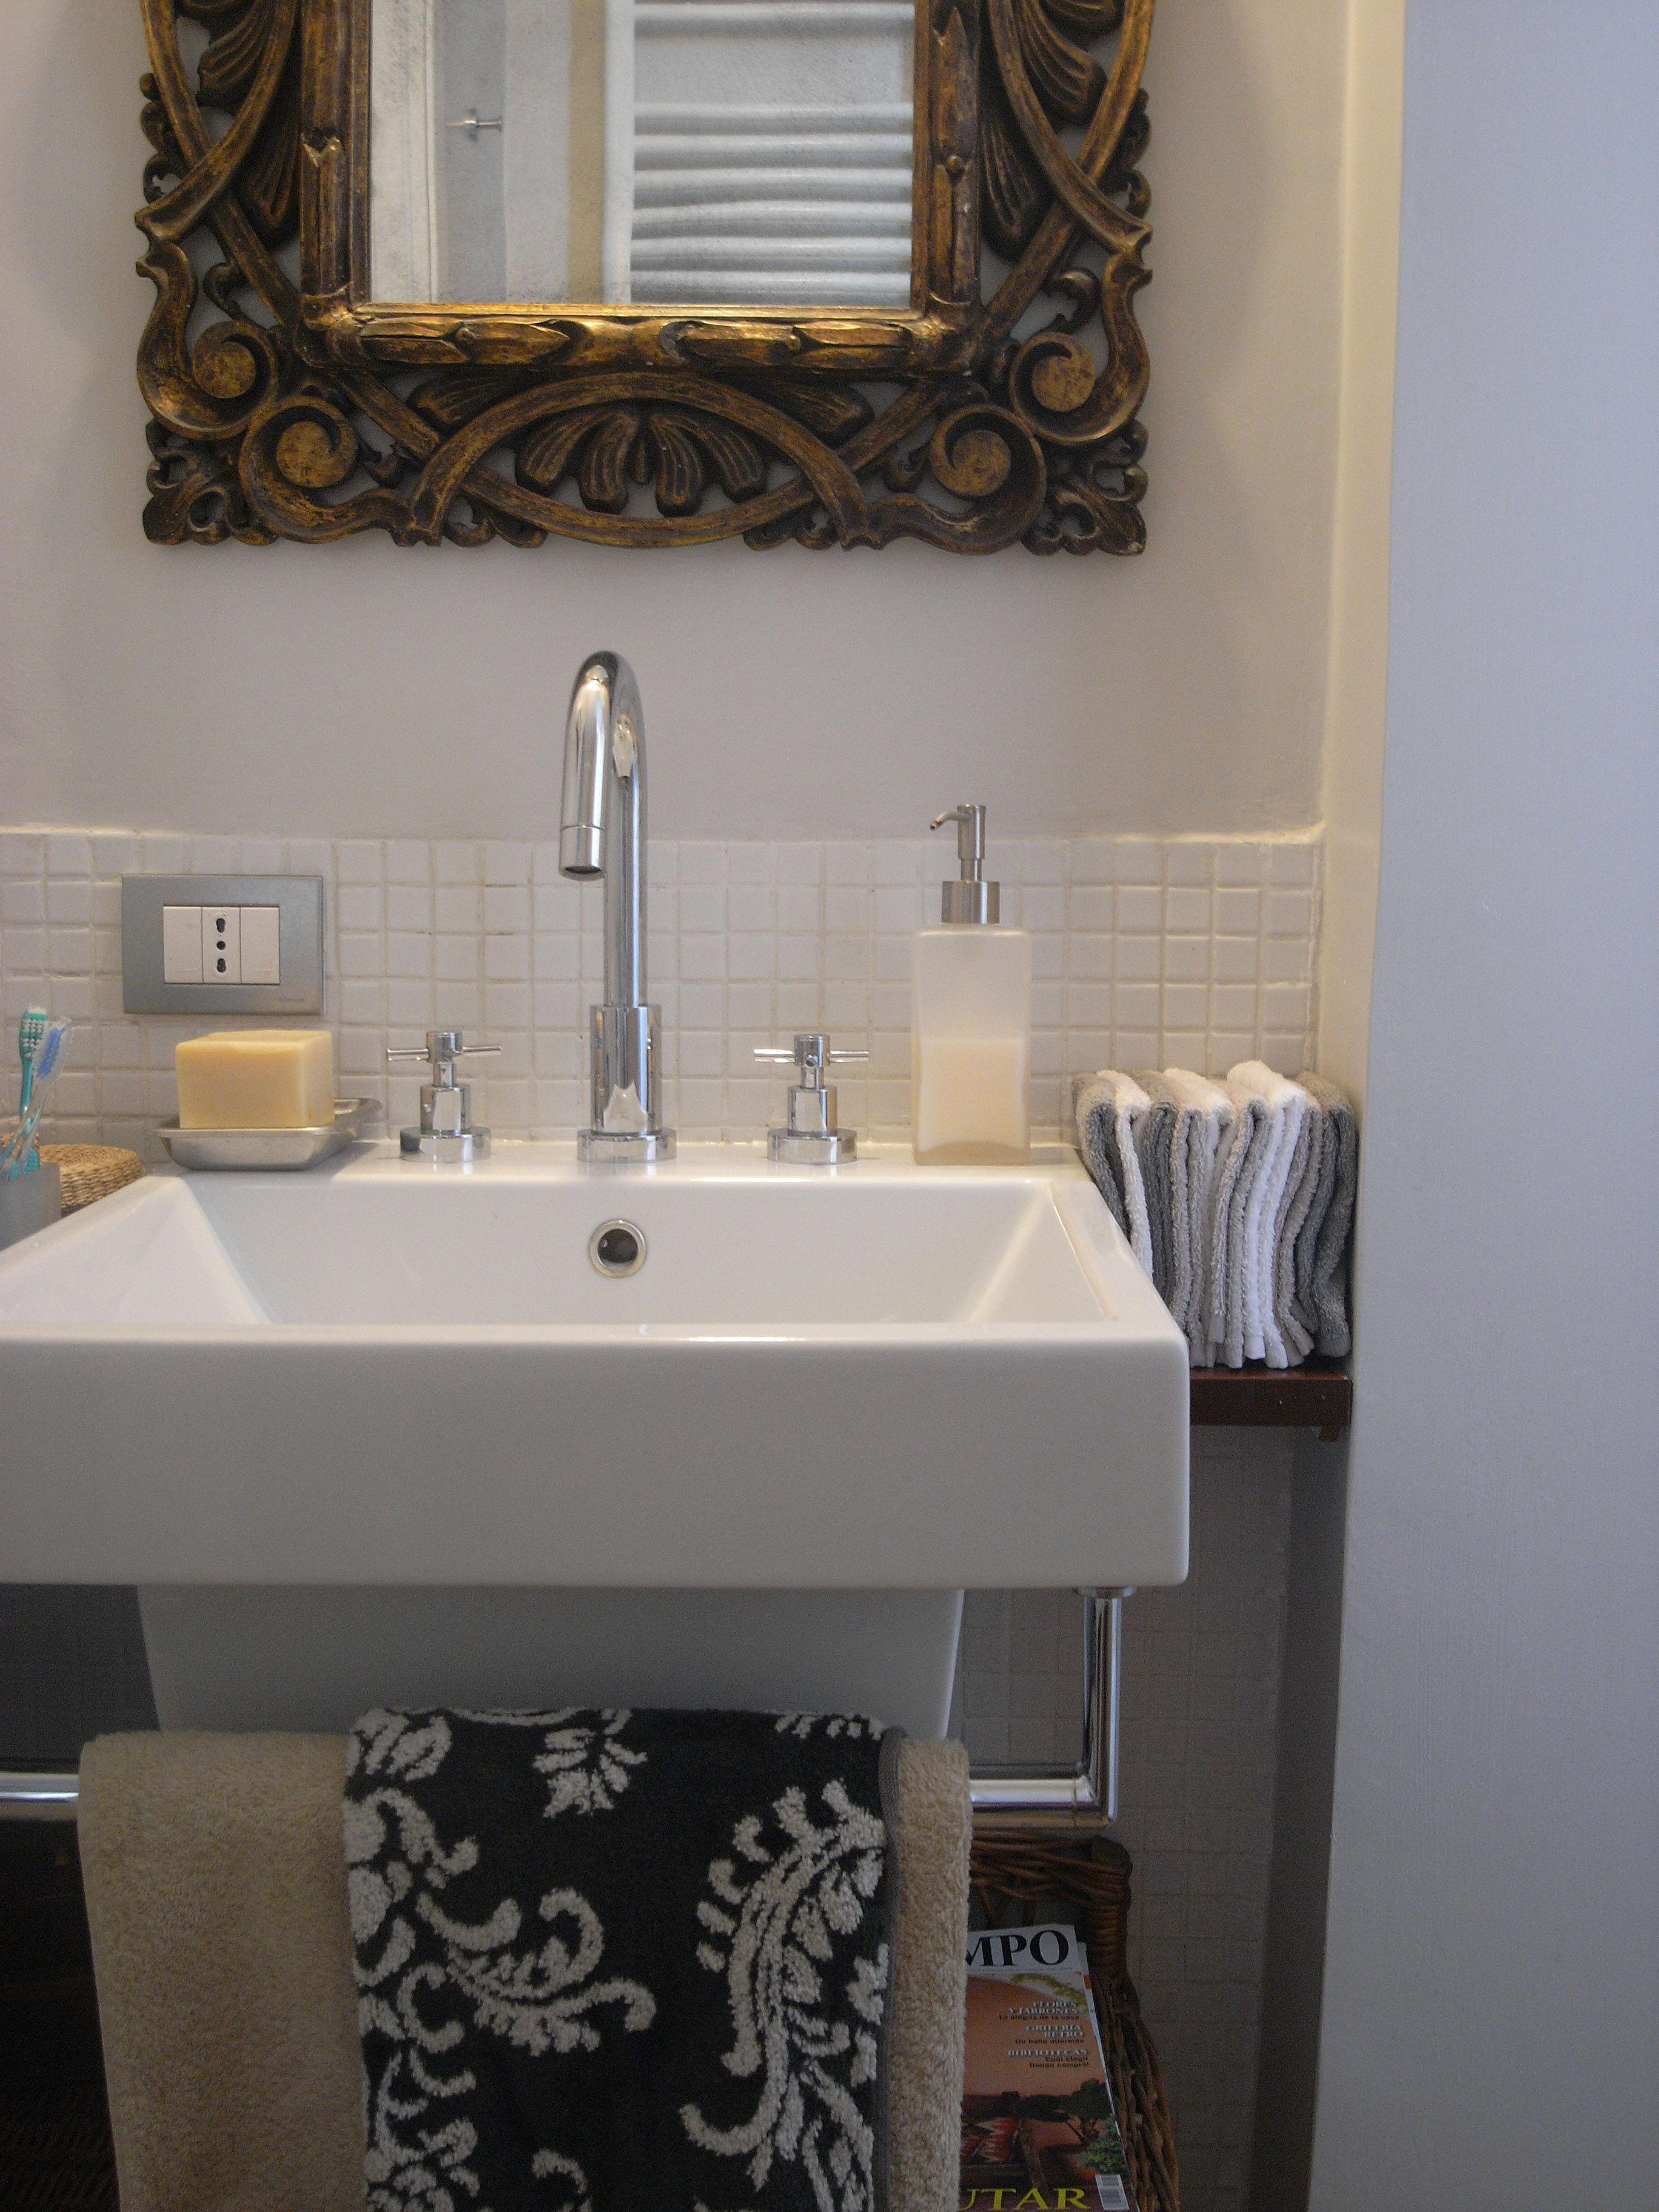 Catalano Sink And Antique Mirror 1700 In A Small Elegant Bathroom